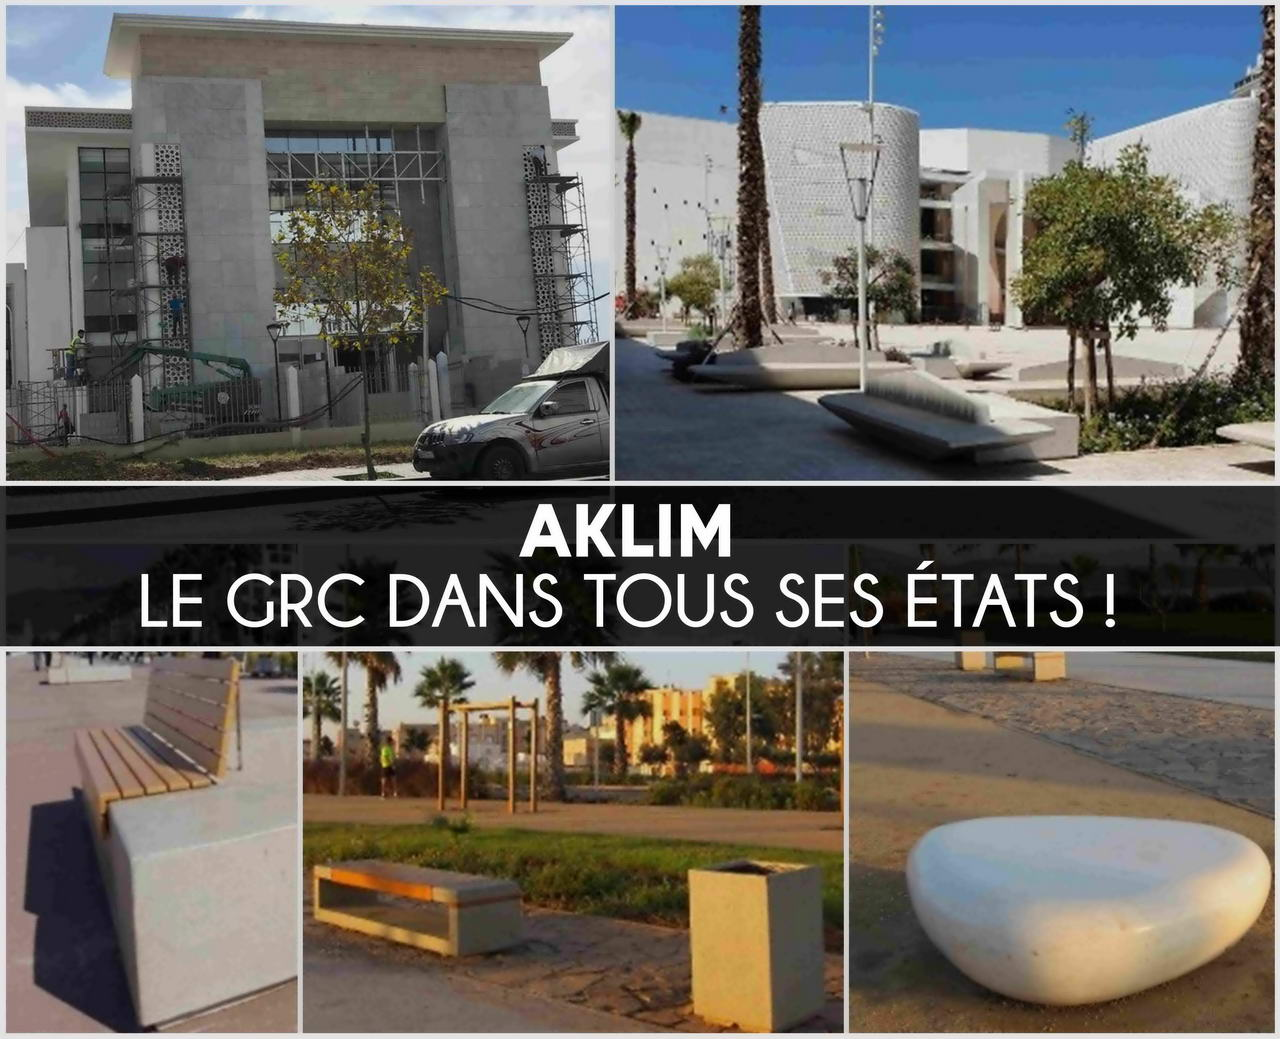 featured image Aklim mobilier urbain mabani.info mabani.ma